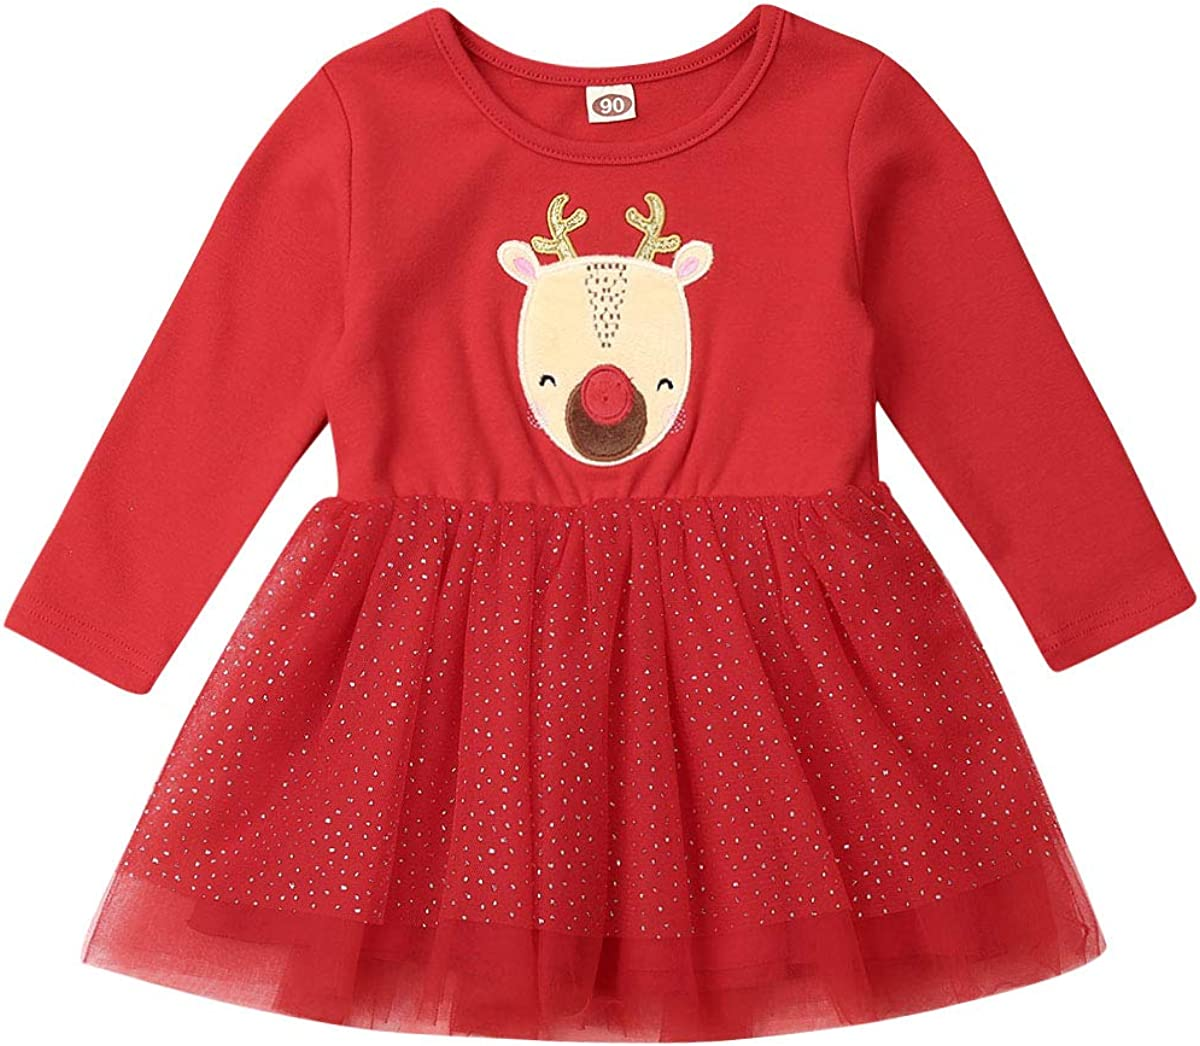 Toddler Newborn Baby Girls Christmas New Year Red Long Sleeve Princess Tutu Dresses Deer Print Xmas Party Dress With Lace Skirt Amazon Co Uk Clothing